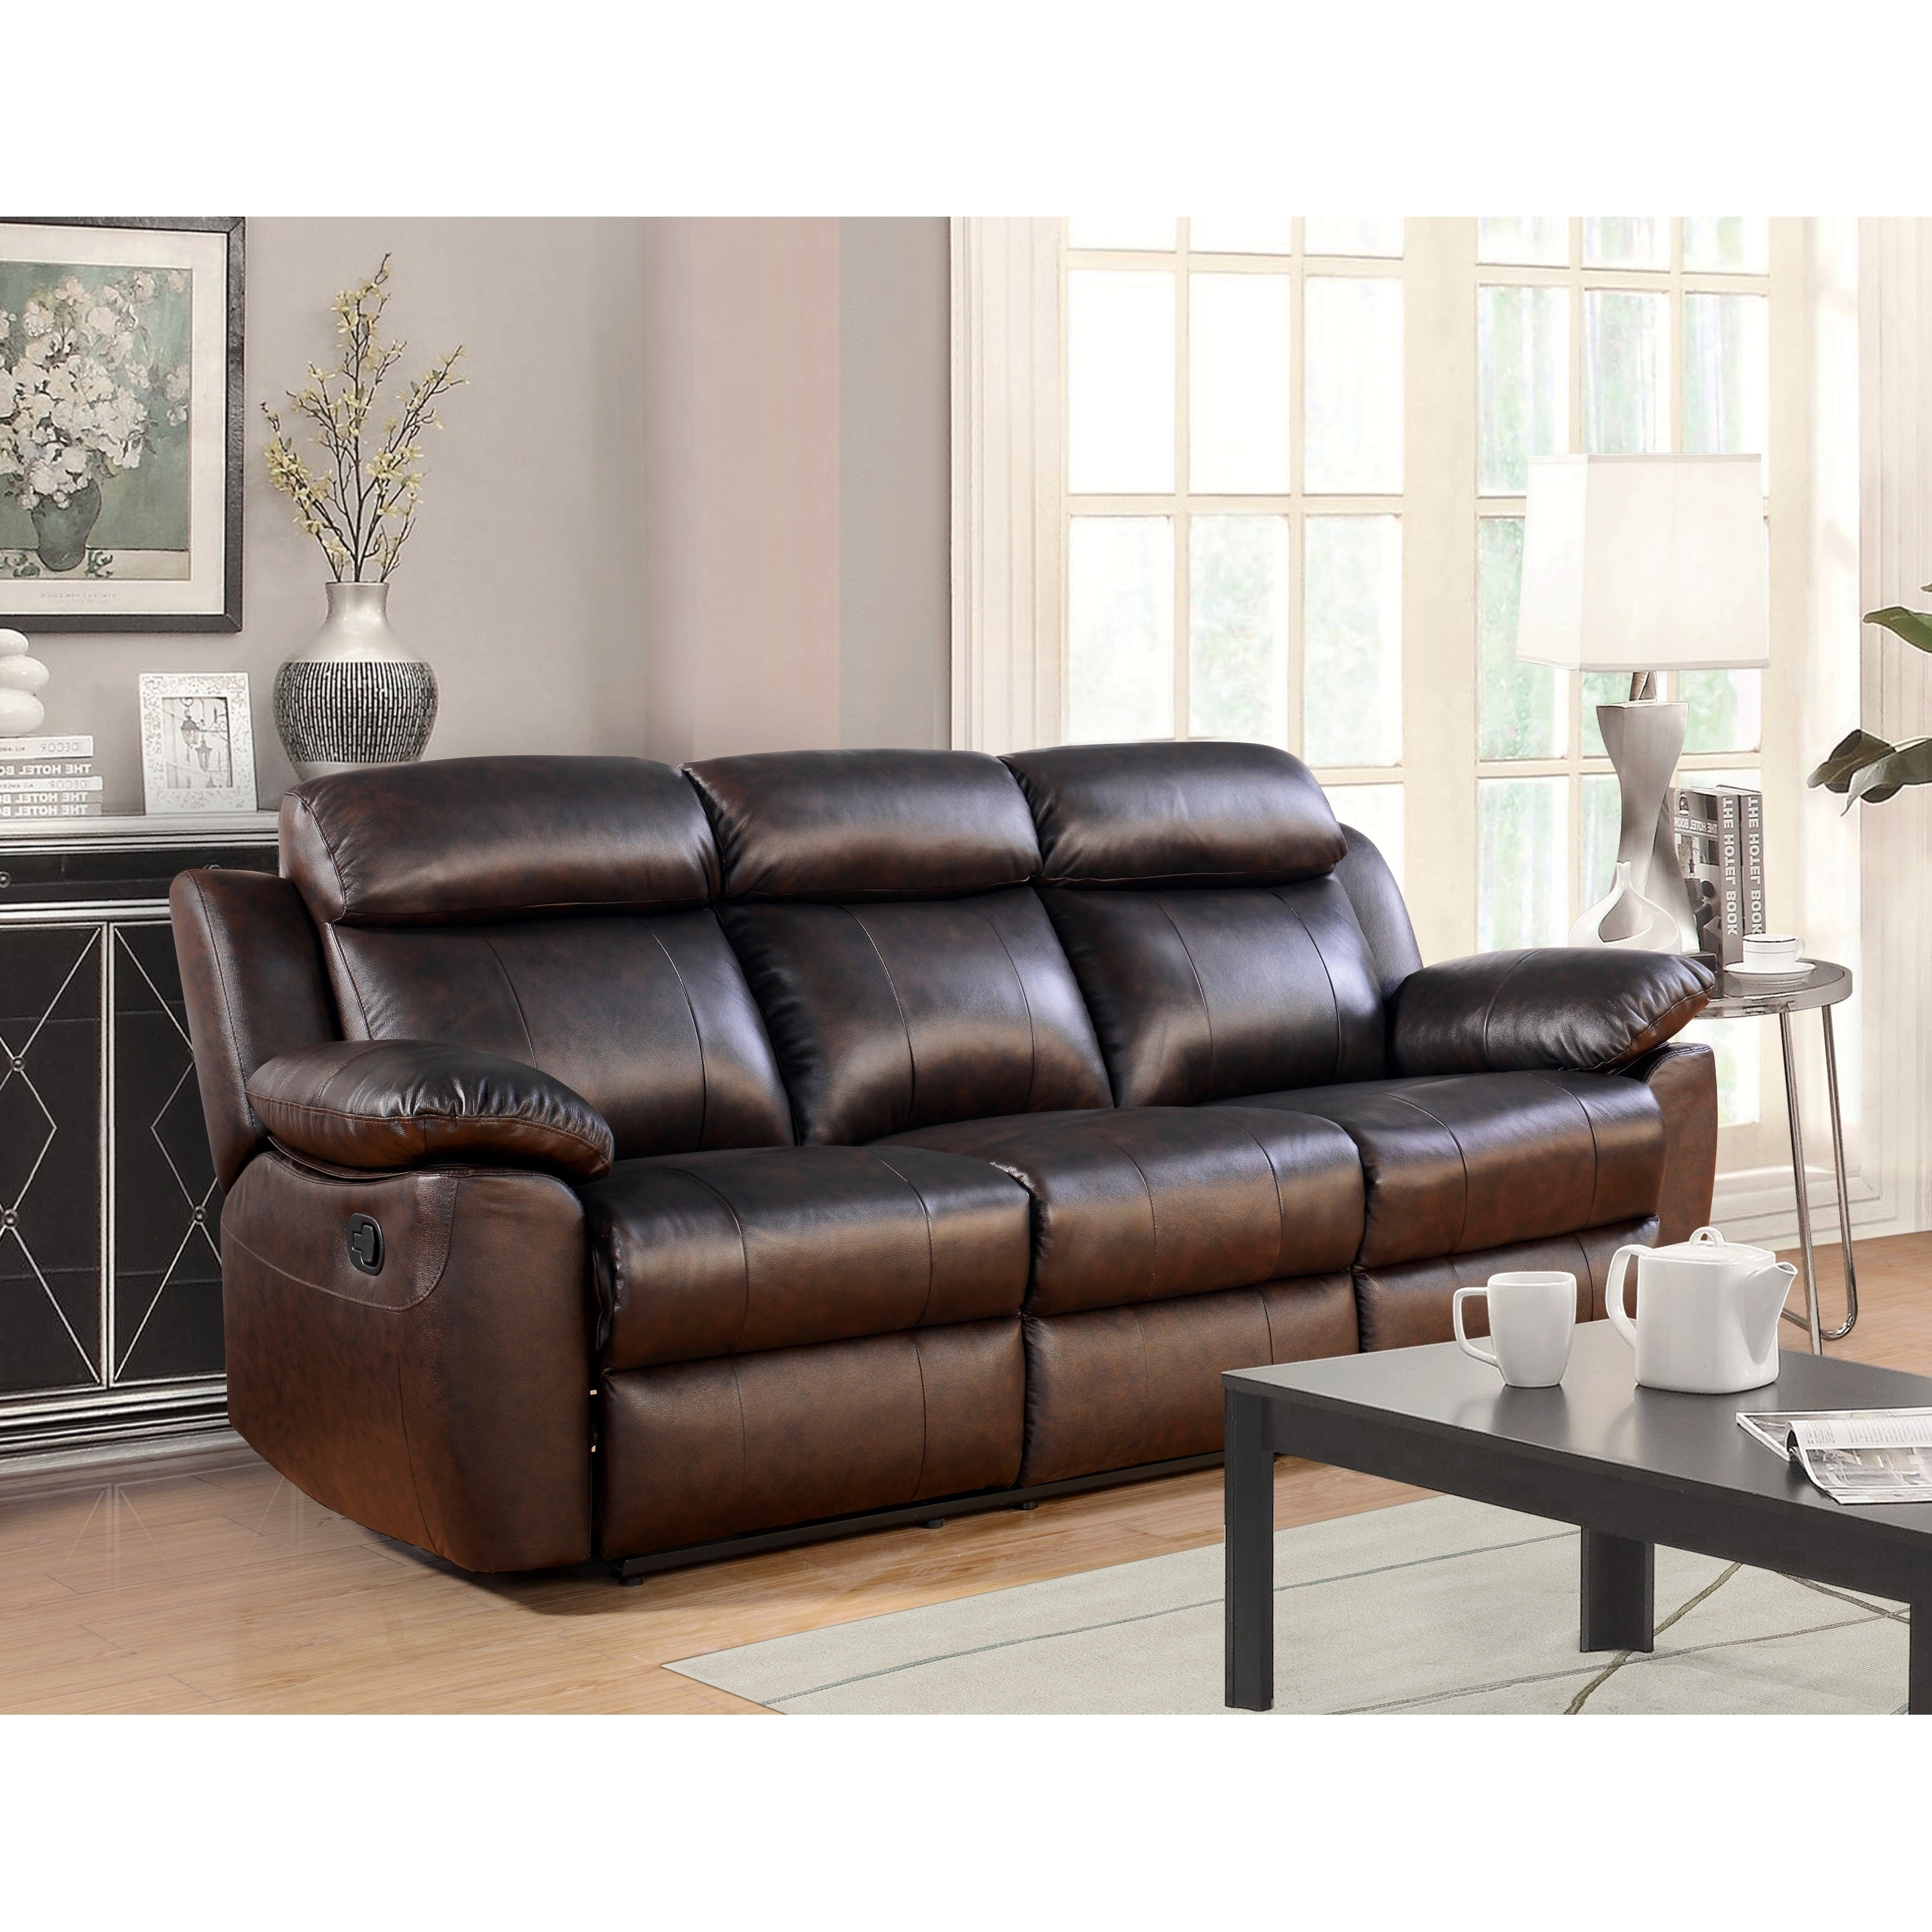 Shop Abbyson Braylen Top Grain Leather Reclining Sofa - On Sale ...